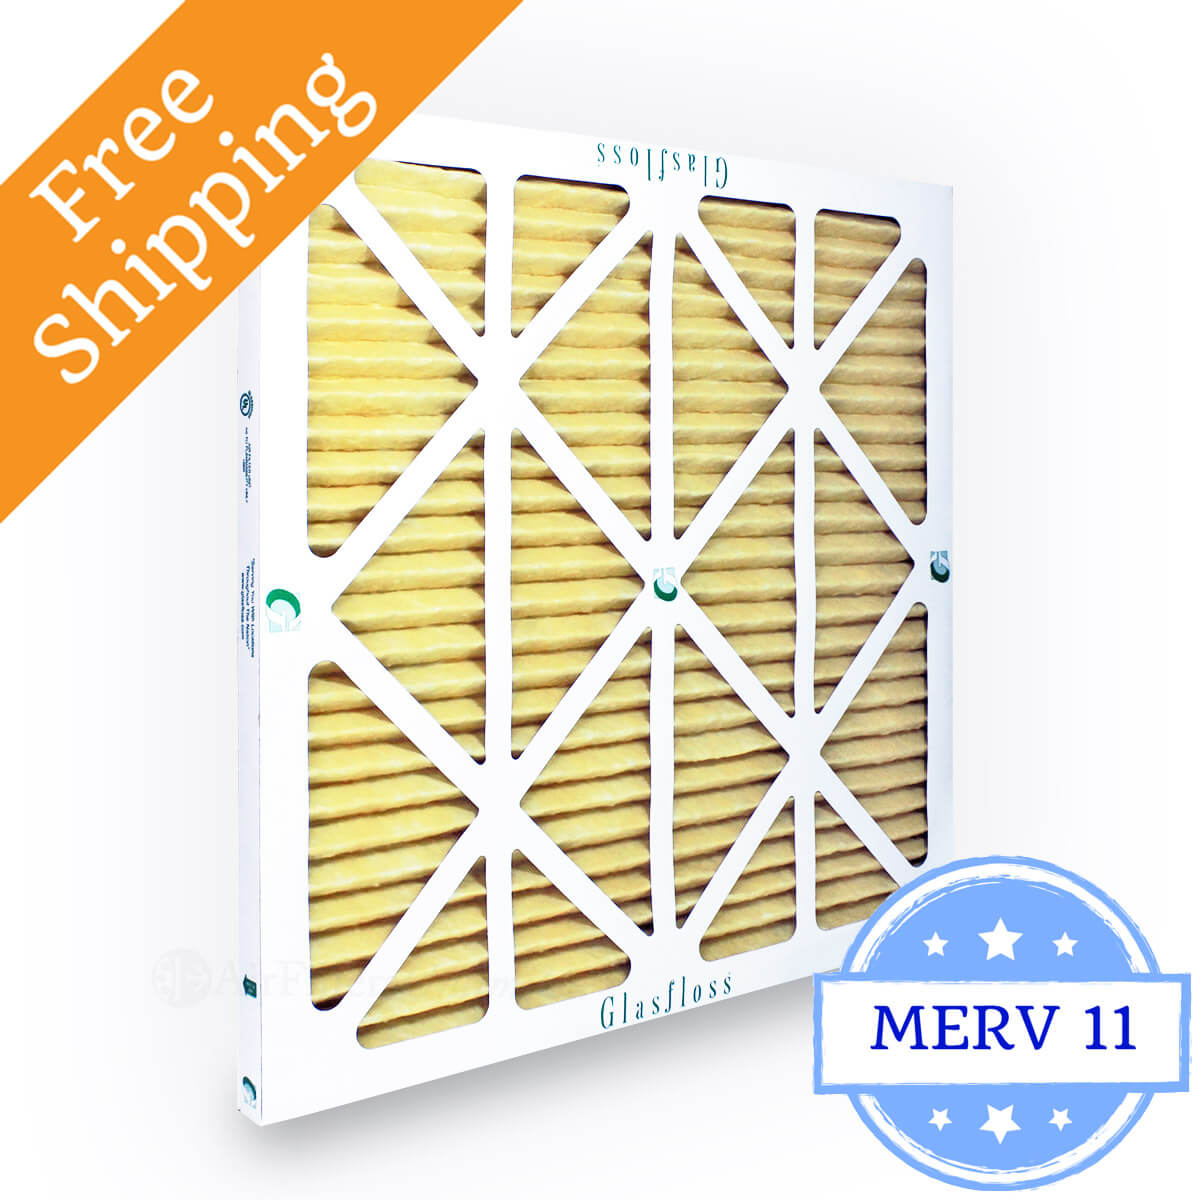 Glasfloss 24x24x1 Air Filter MR-11 Series